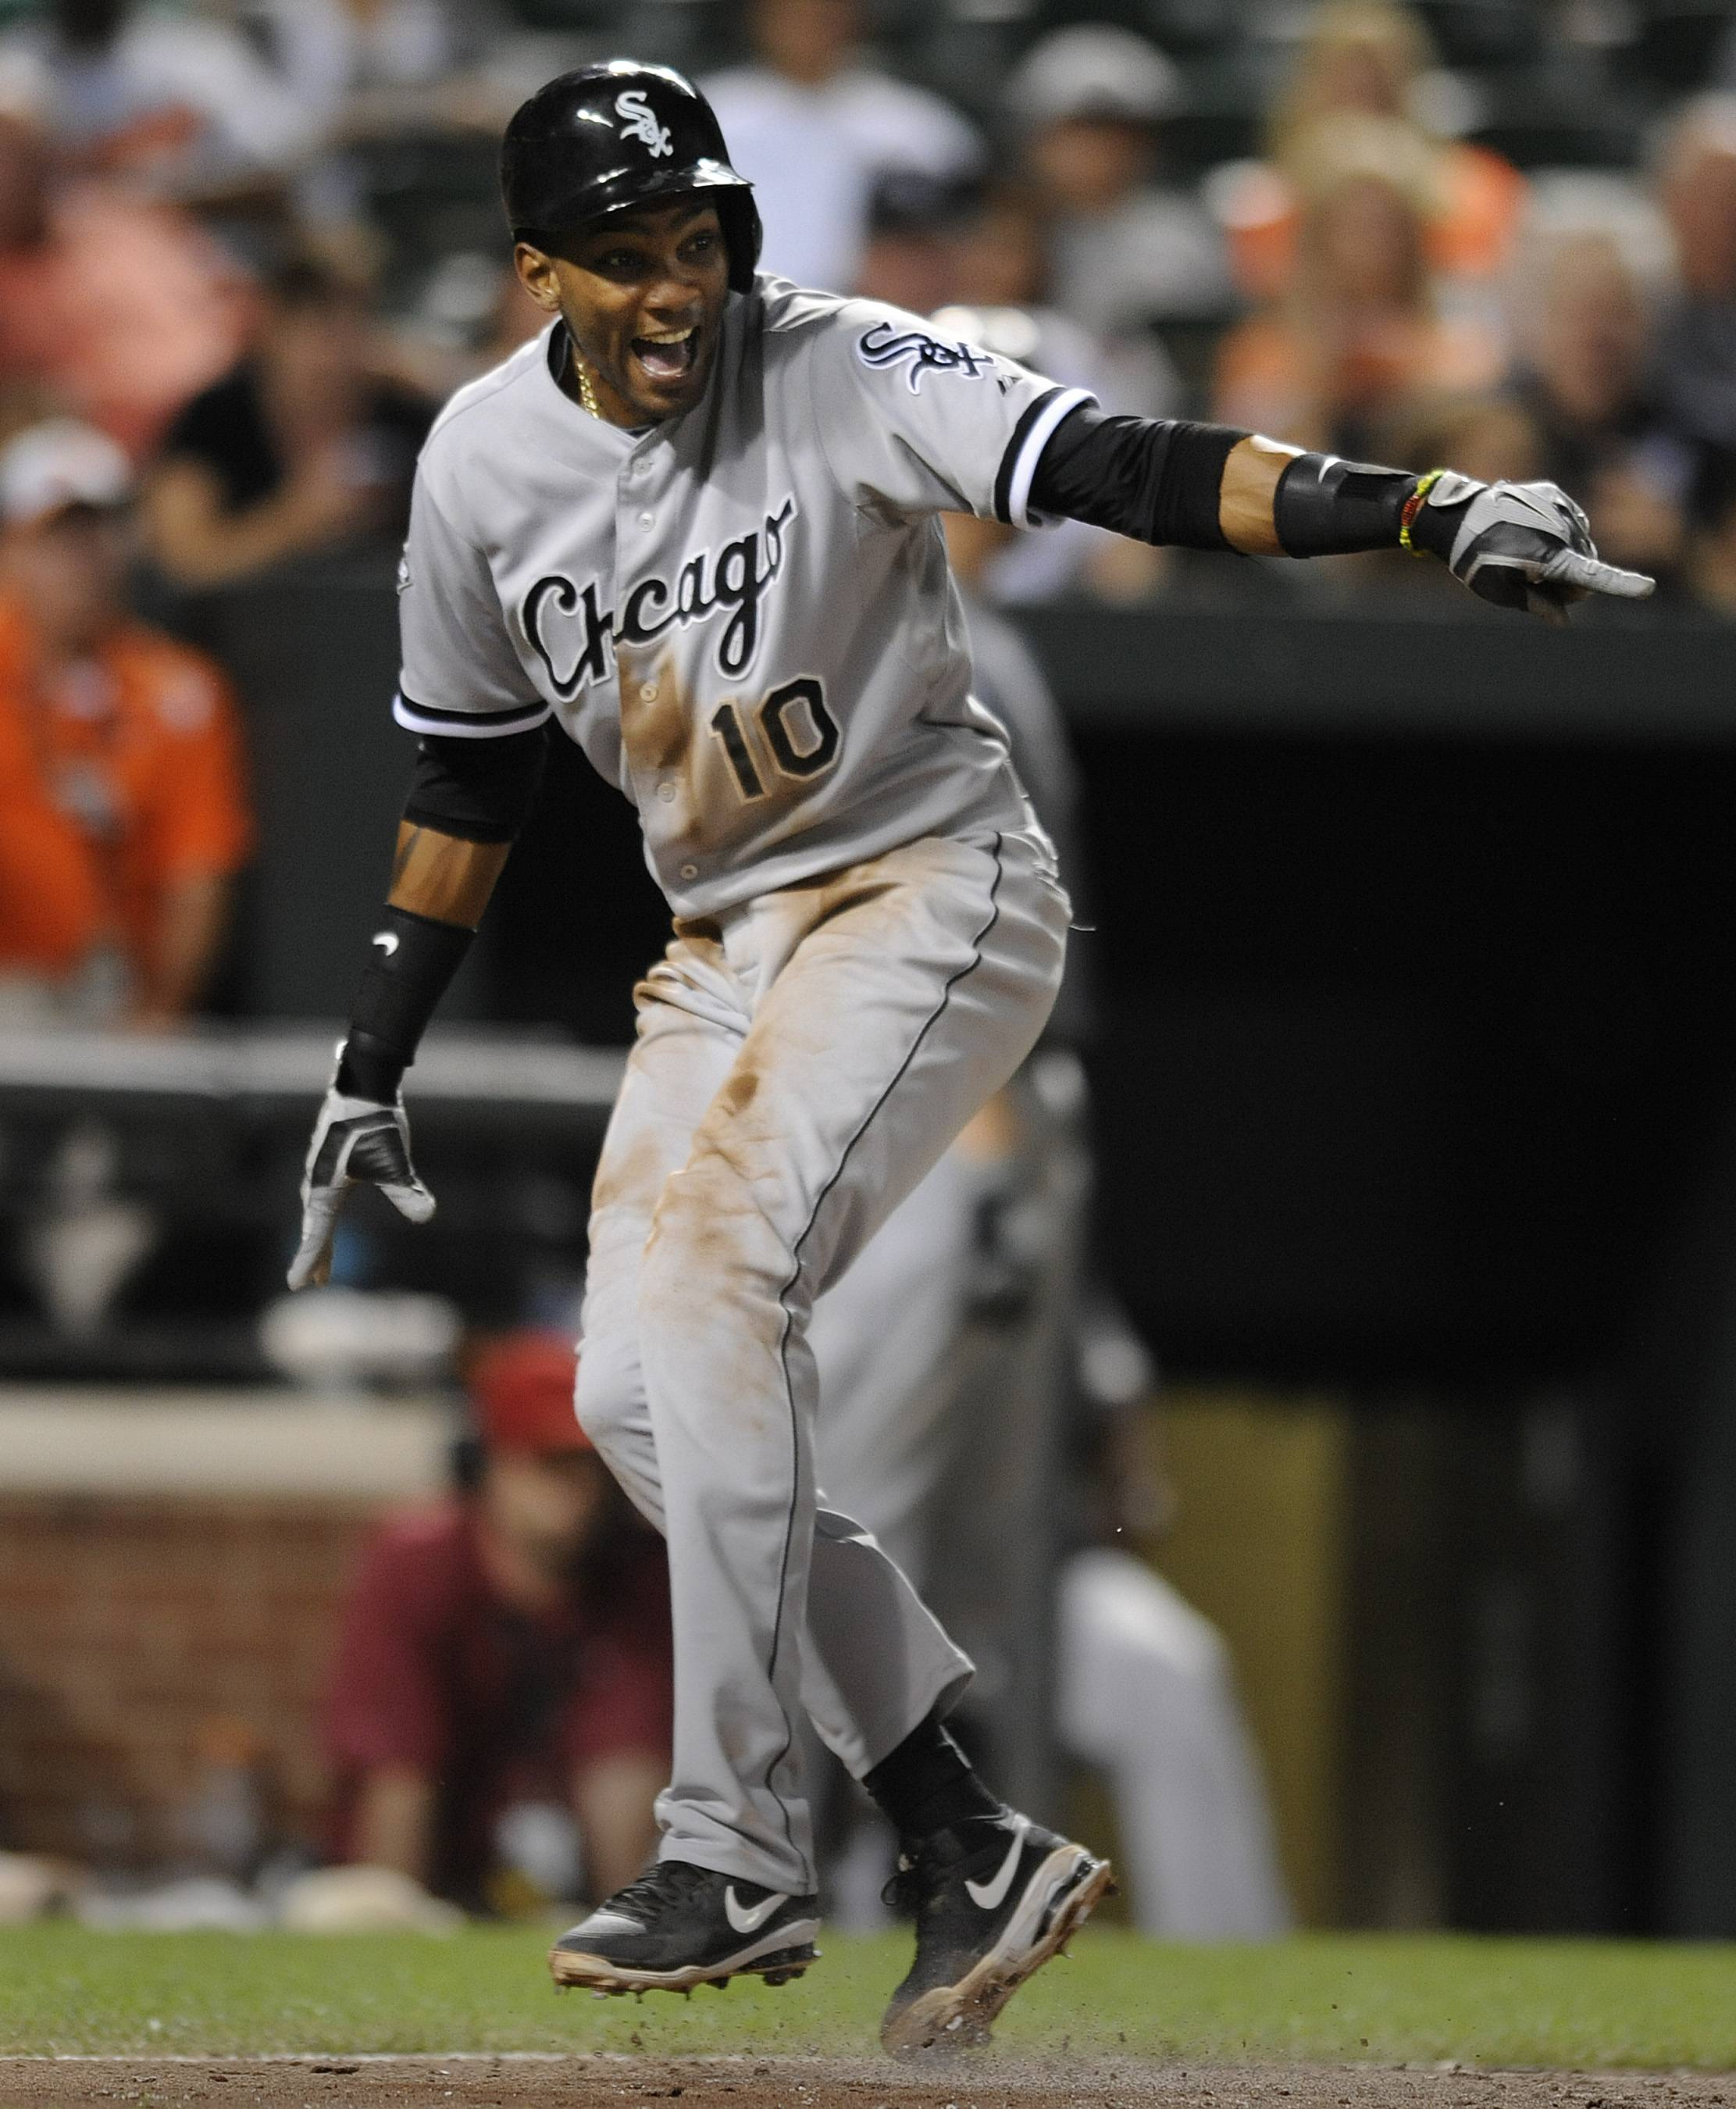 Alexei Ramirez reacts after being called safe at the plate on a single by Alejandro De Aza in the eighth inning Tuesday night as the White Sox snapped their five-game losing streak.